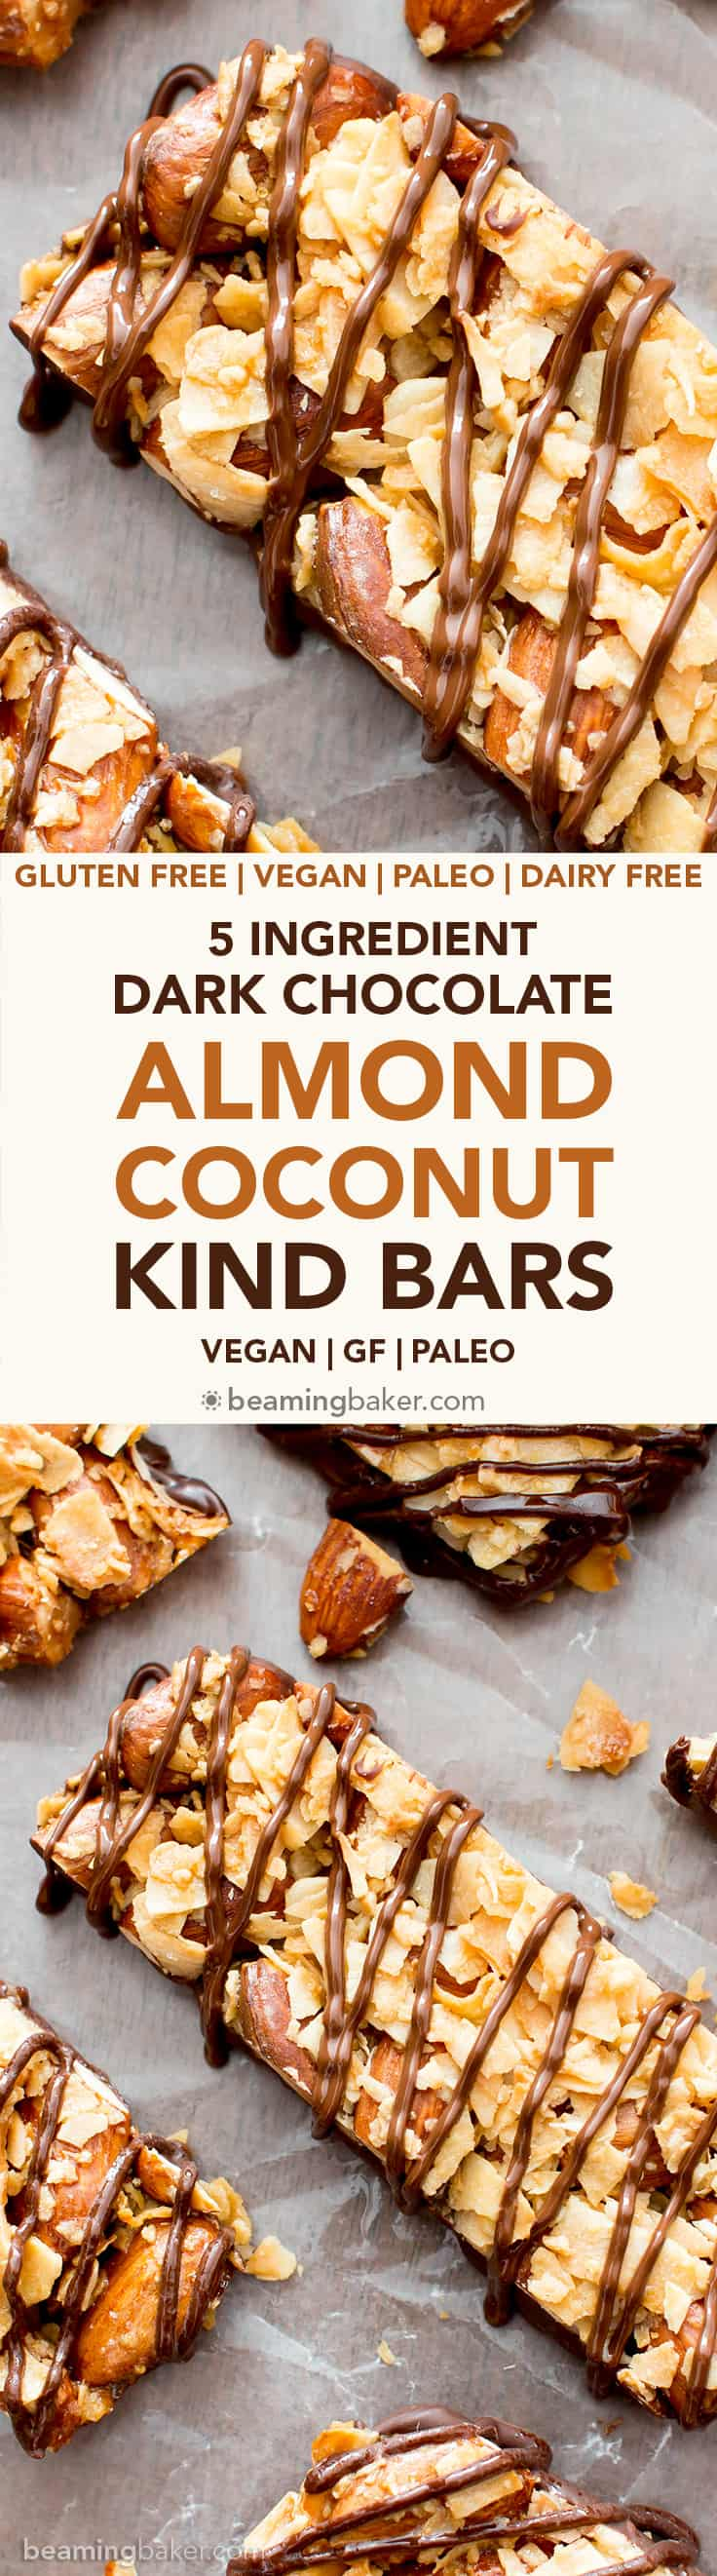 5 Ingredient Dark Chocolate Almond & Coconut Homemade KIND Bars (V, GF): an easy recipe for homemade KIND bars coated in a rich layer of chocolate. #Paleo #Vegan #GlutenFree #Healthy #DairyFree #Chocolate #Snacks | Recipe on BeamingBaker.com